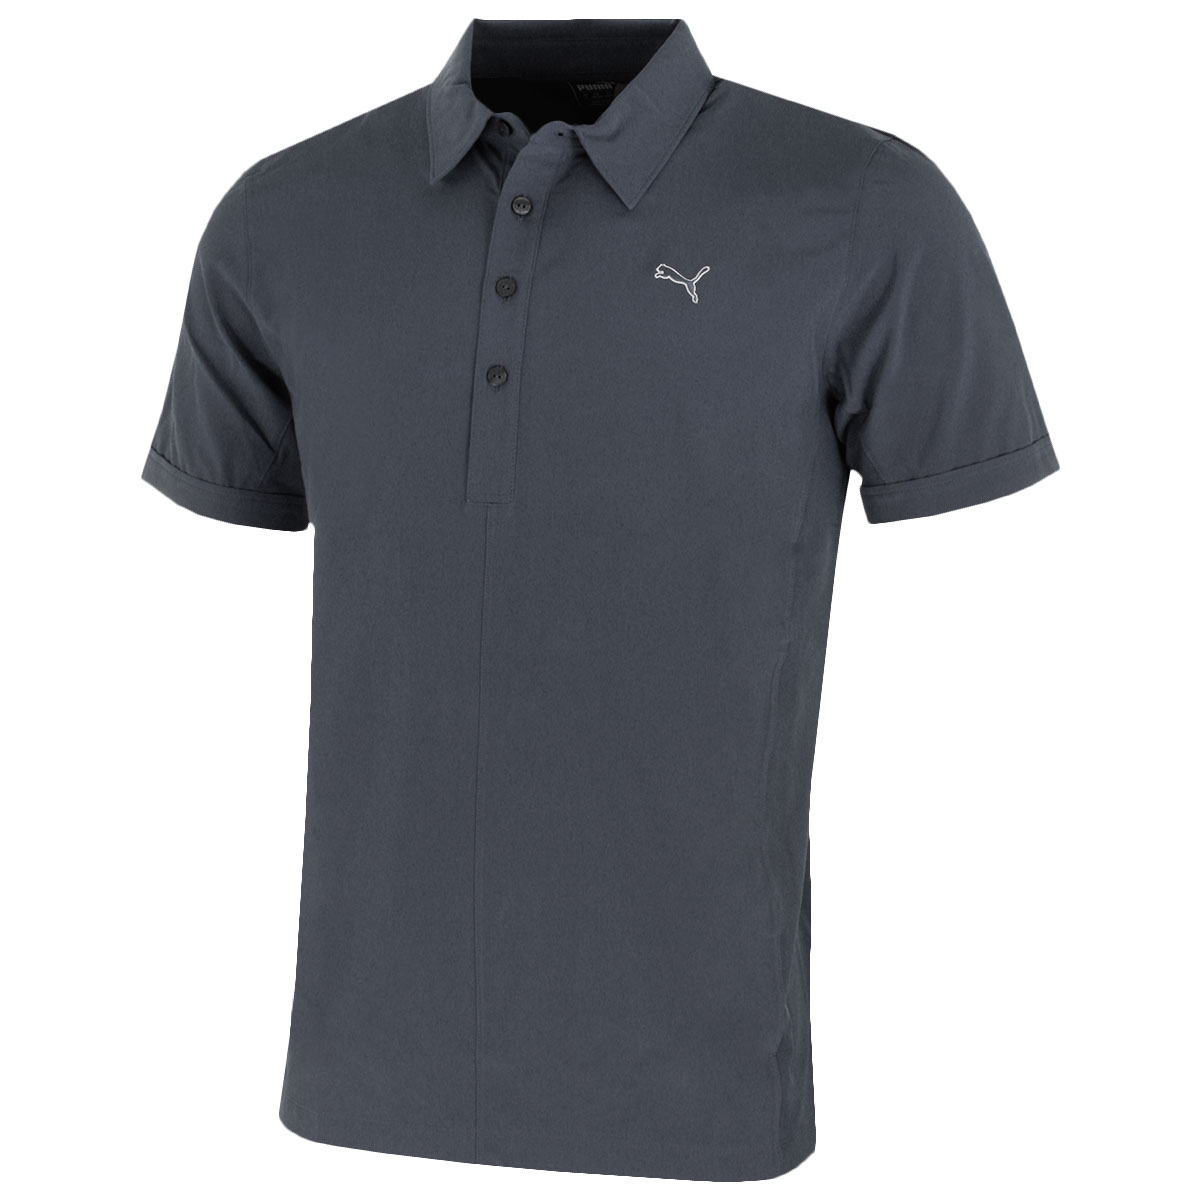 Puma golf mens sport woven polo shirt 569112 short sleeve for Mens puma golf shirts